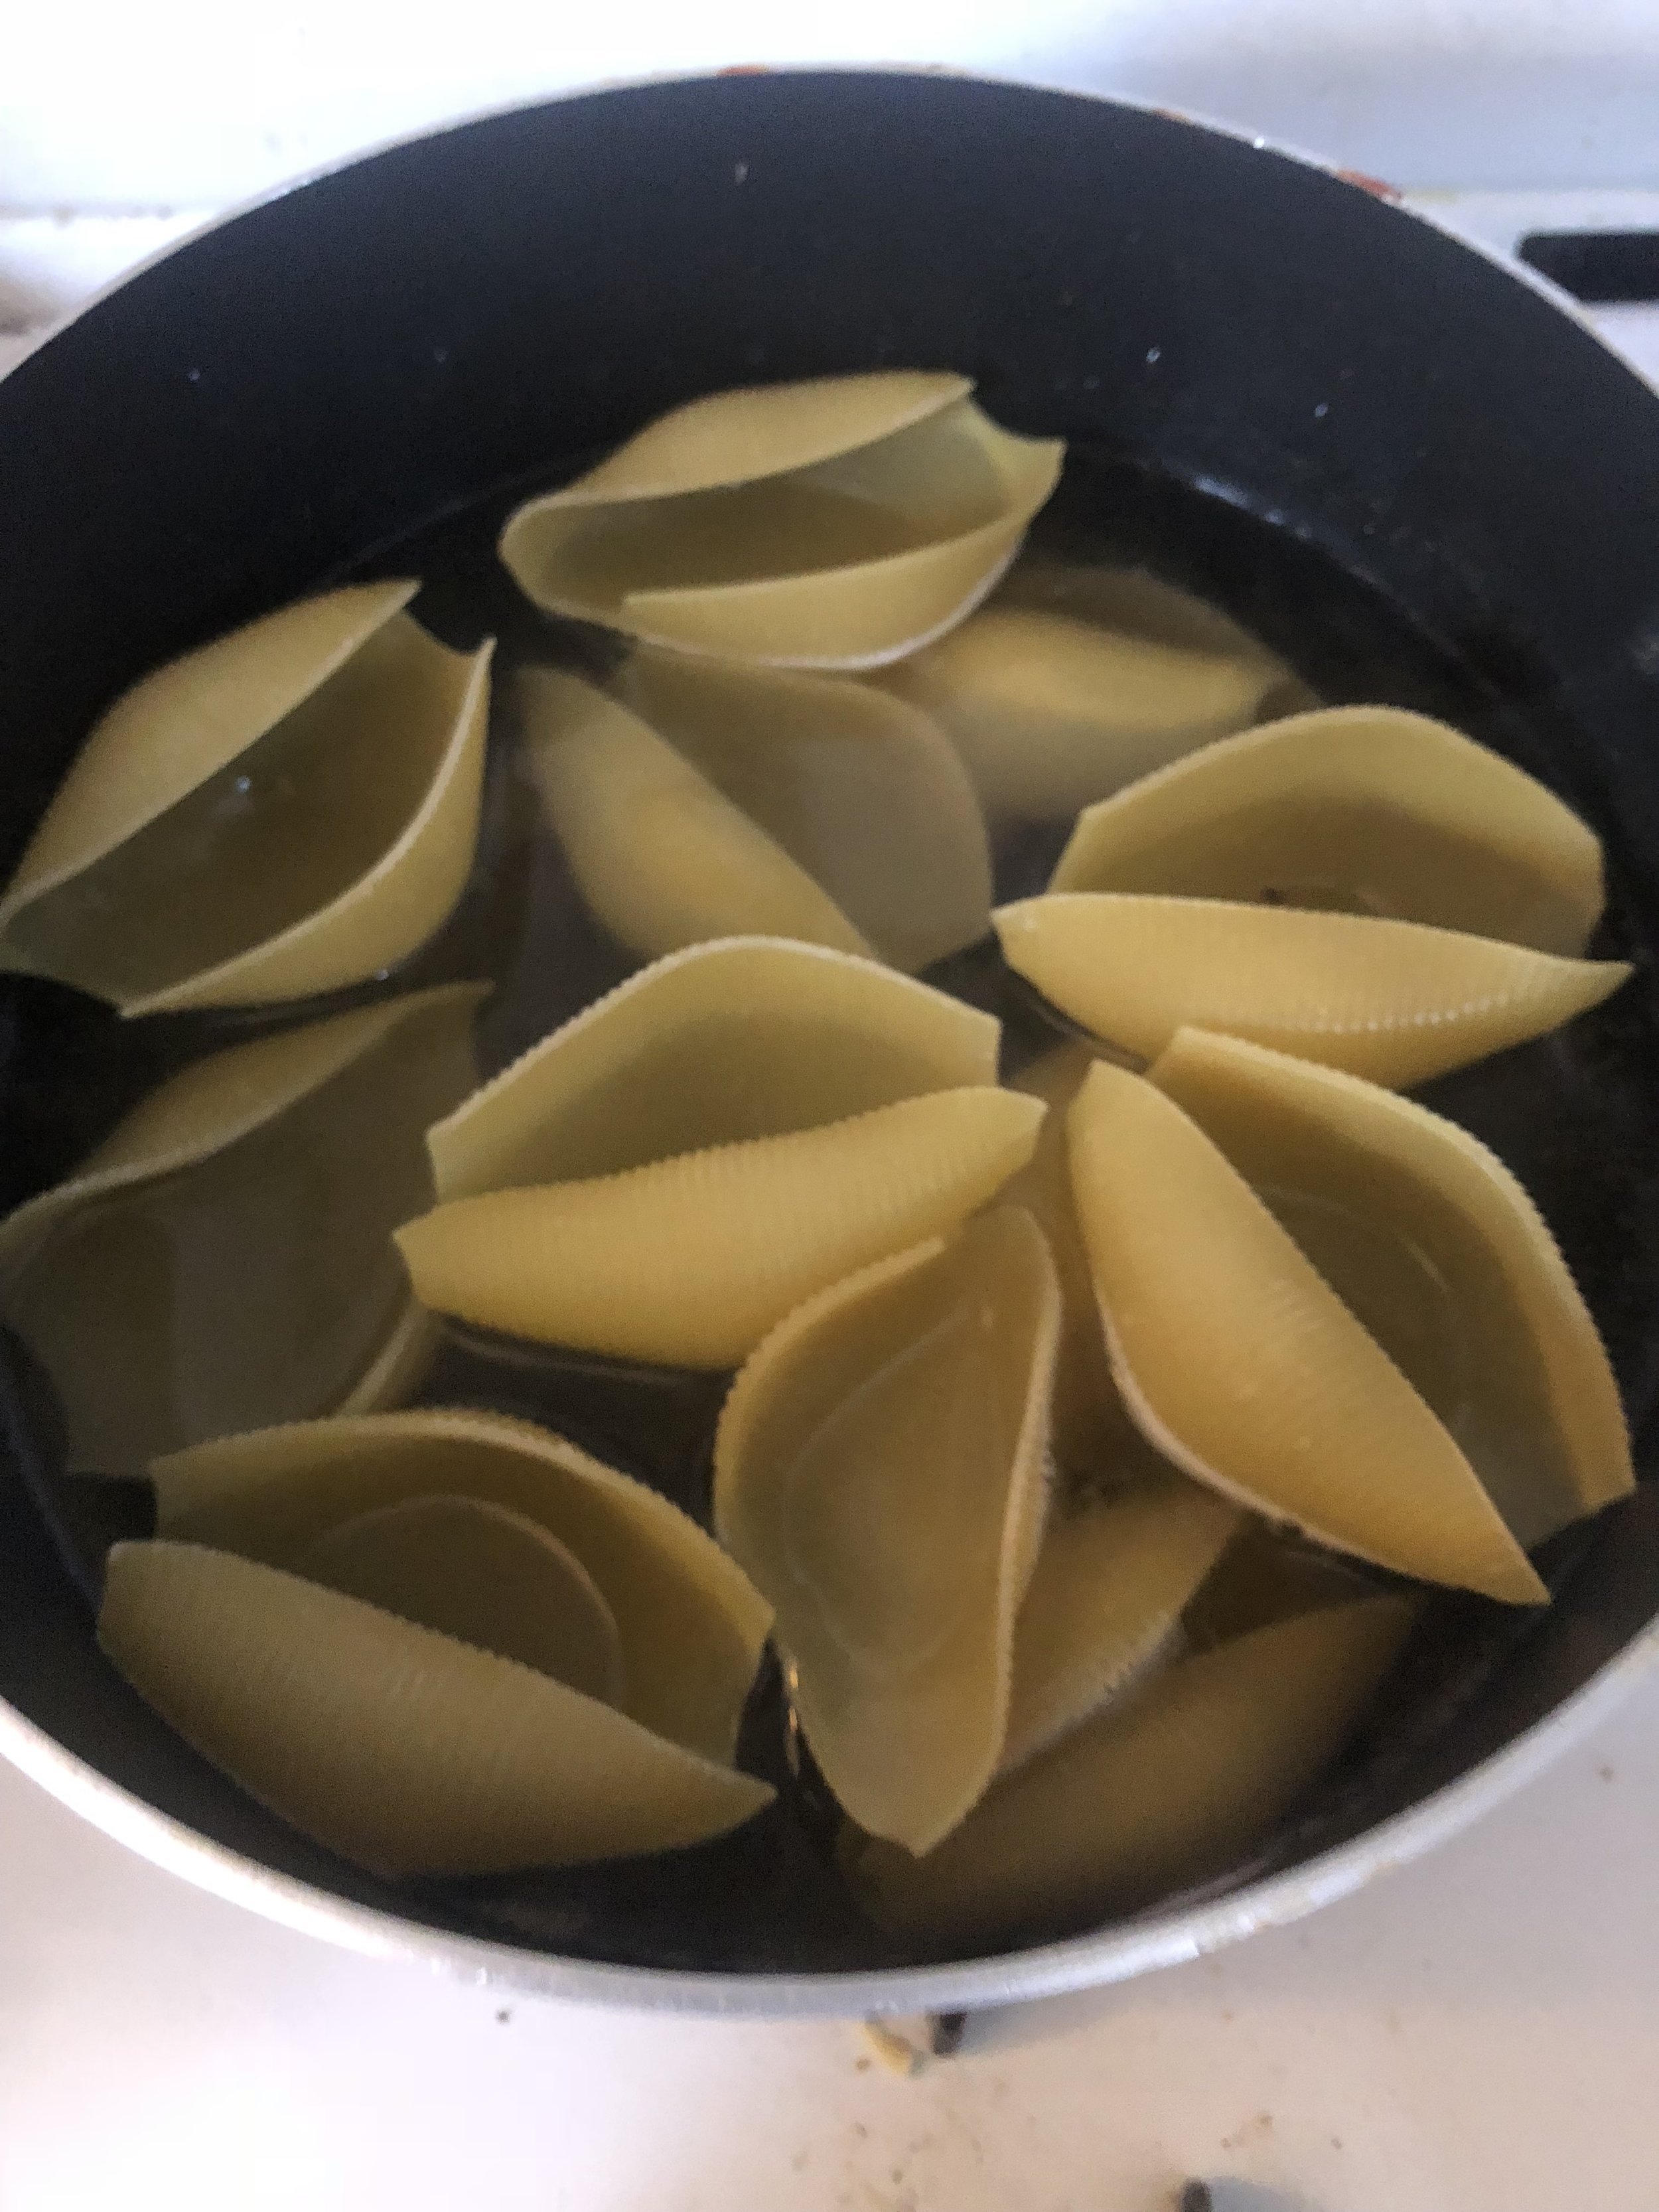 Boil 6-9 cups of water and then add the shells to the boiling water.